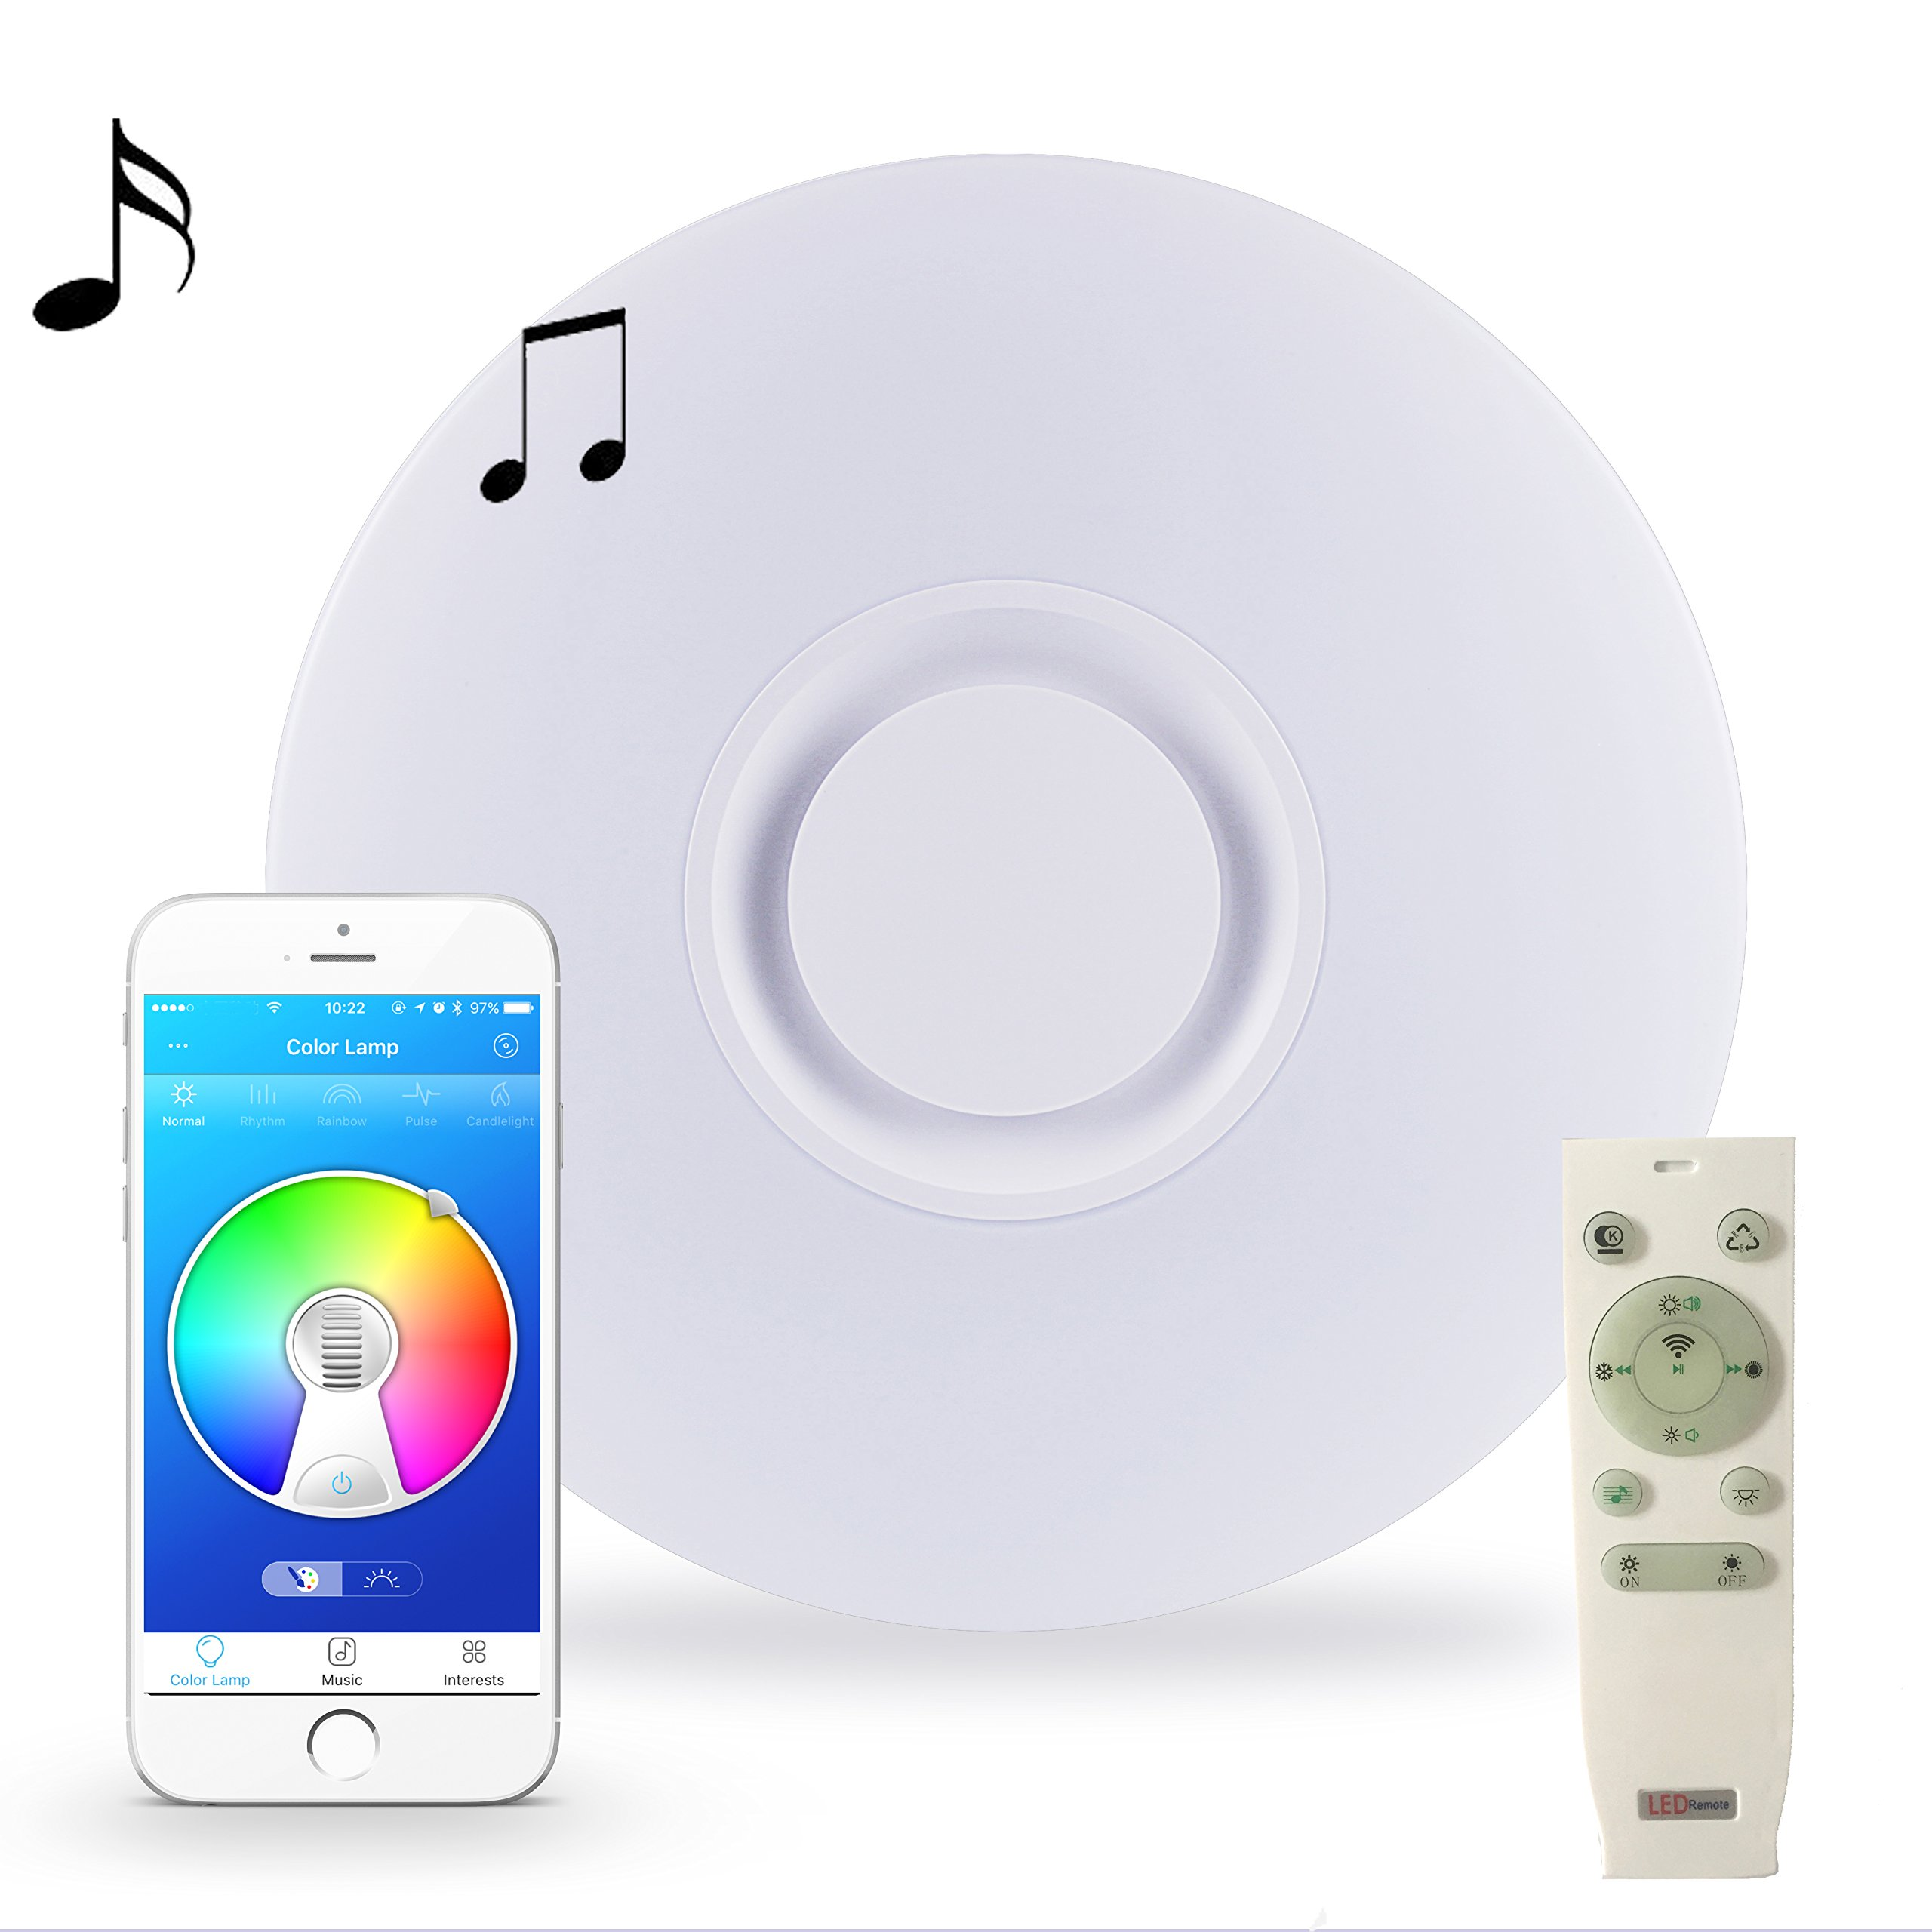 HOREVO LED Ceiling Light with Remote Control, Built-in Bluetooth Speaker, 36W Ø50cm 19.7 Inch Smartphone APP Control, RGB Color Changing, Cool/Warm Light, Flush Mount Fixture for Bedroom Party